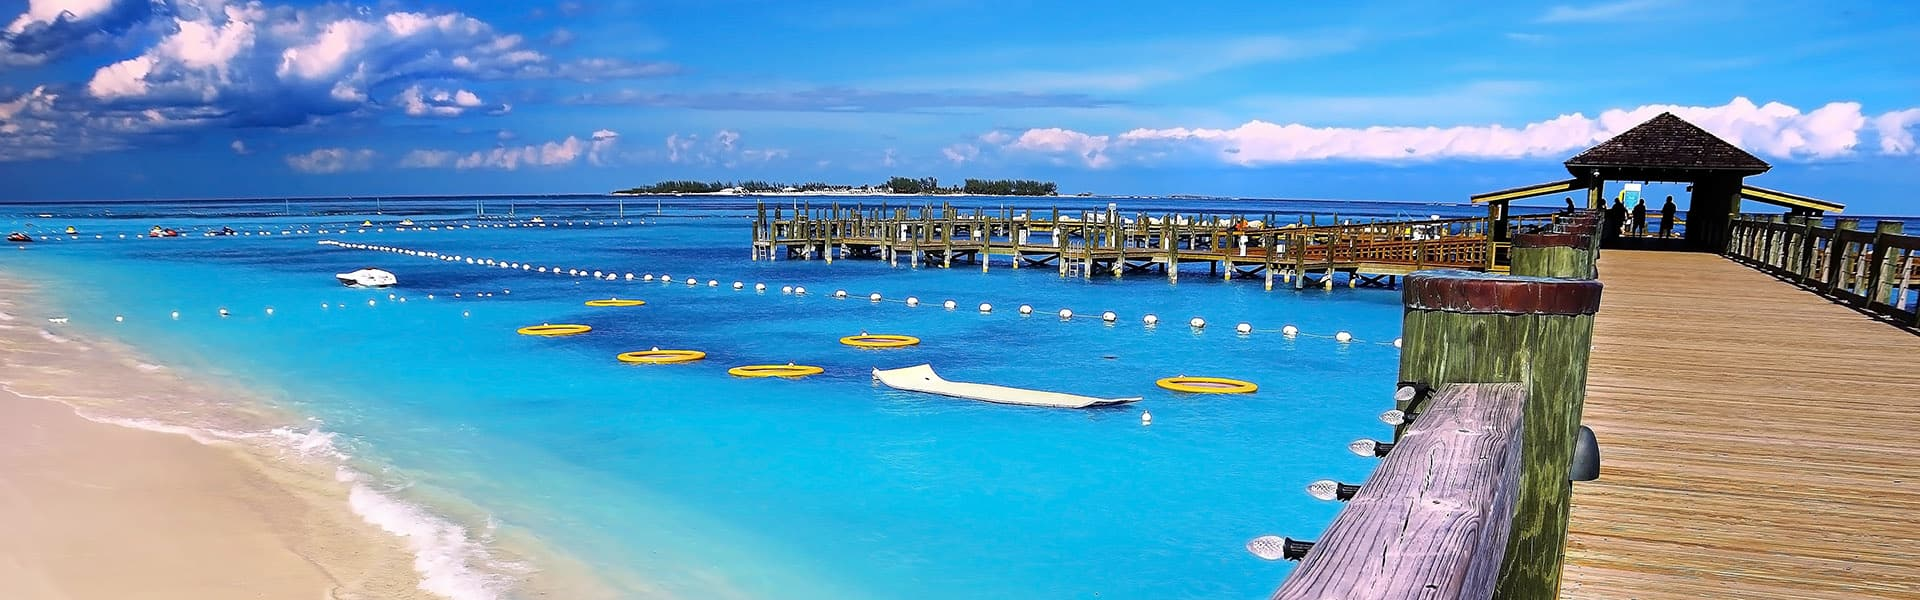 Bahamas: Great Stirrup Cay & Nassau